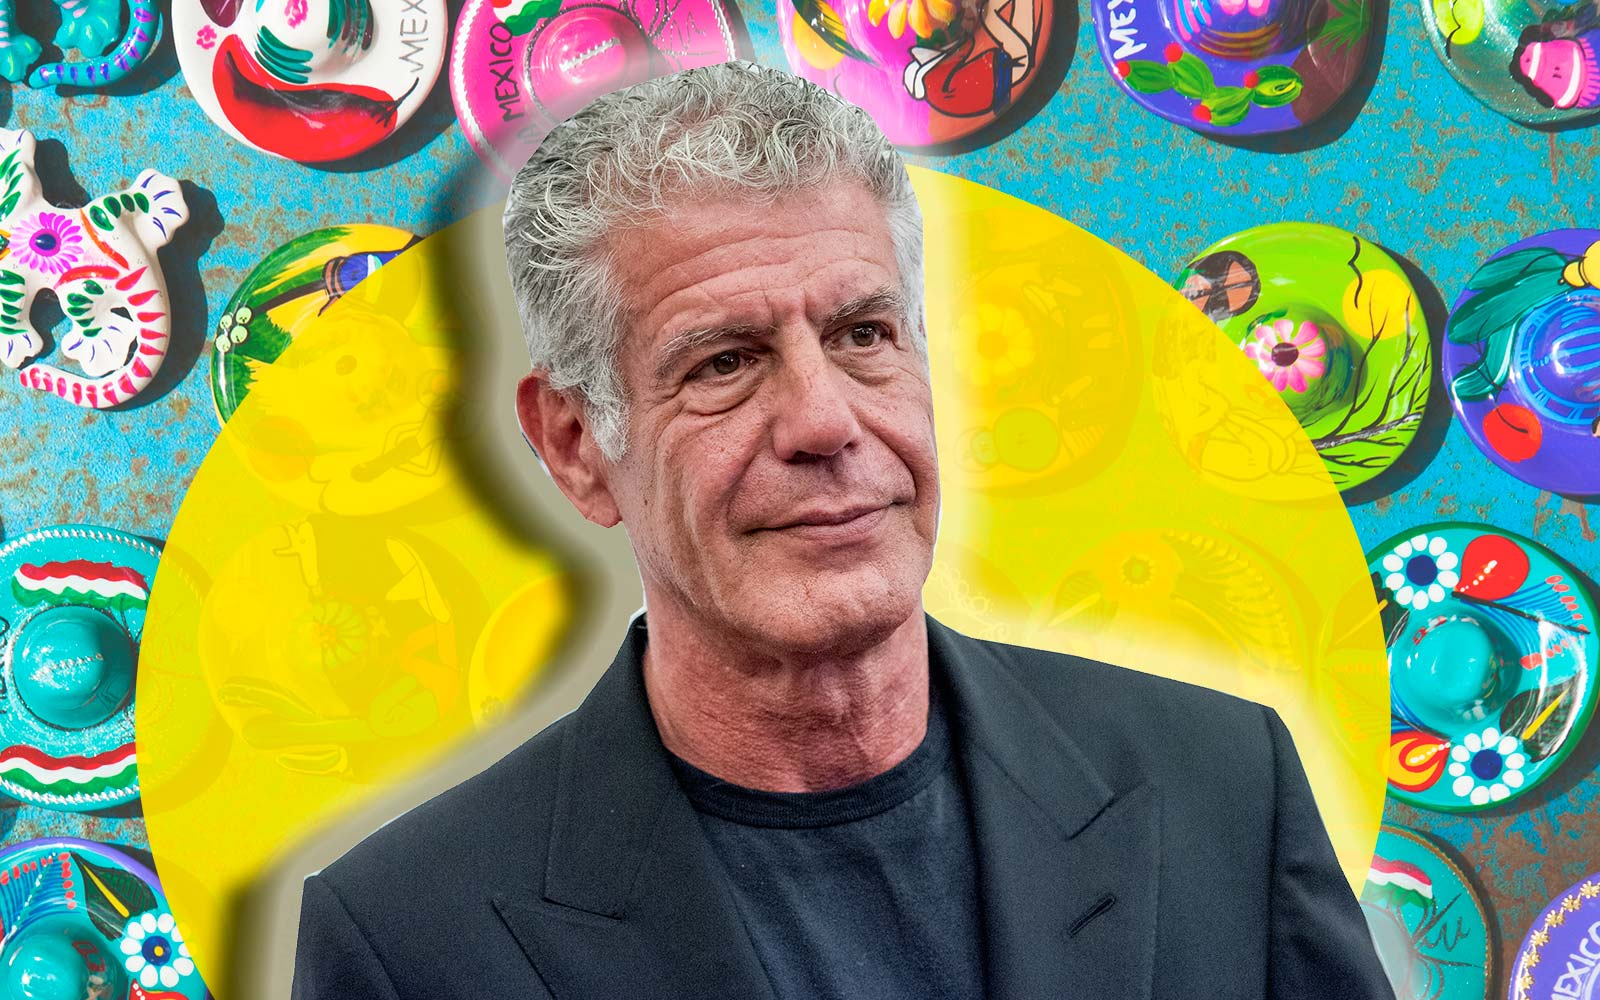 Anthony Bourdain Reveals His Most Treasured Travel Souvenir